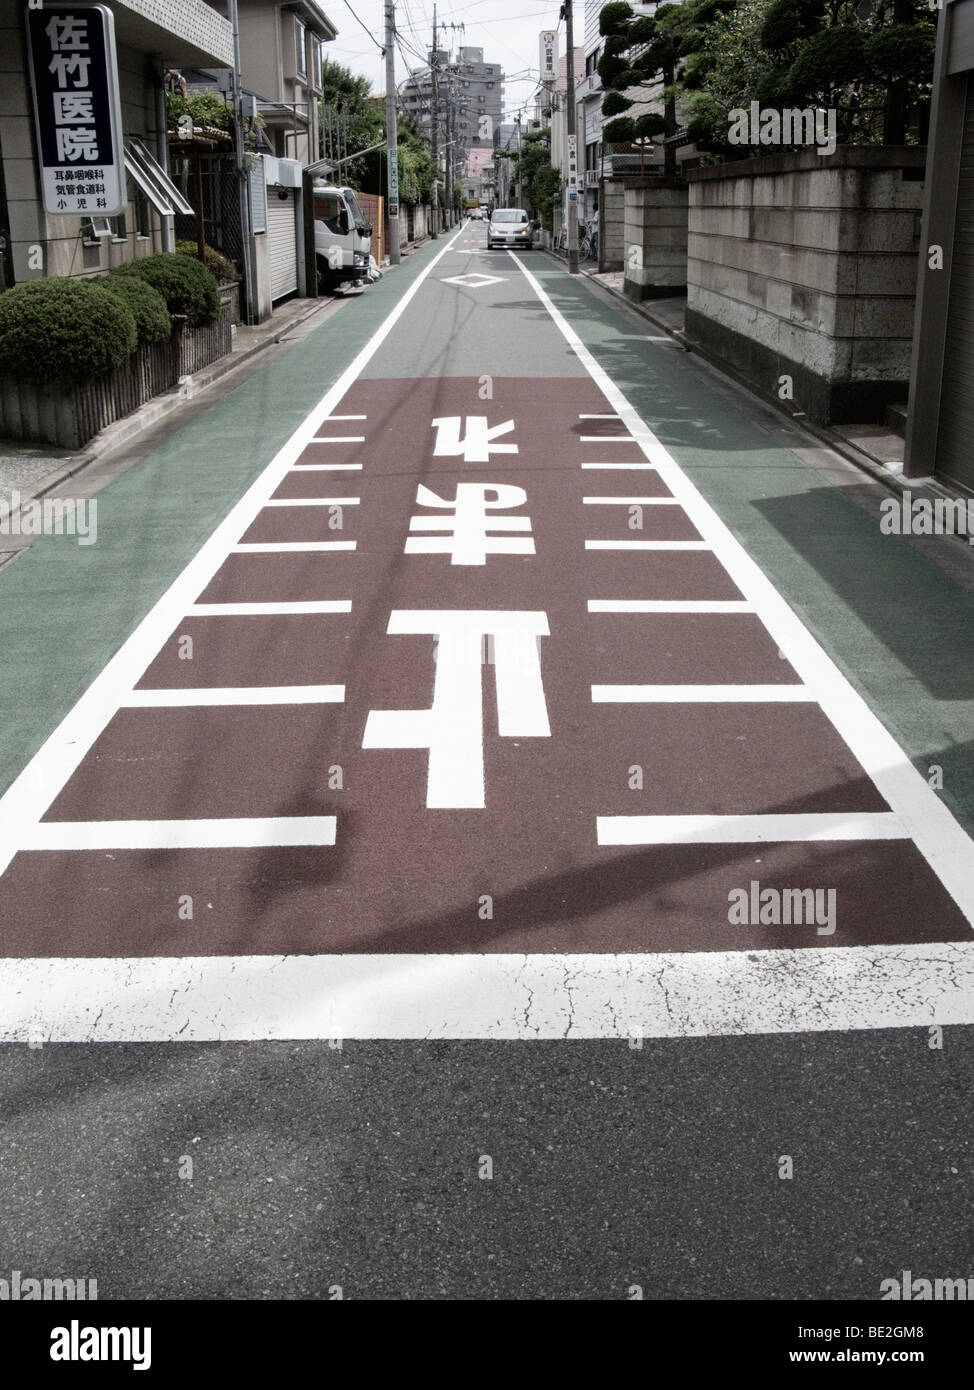 Stop Written On The Street In Japanese In Tokyo Japan Stock Photo Alamy